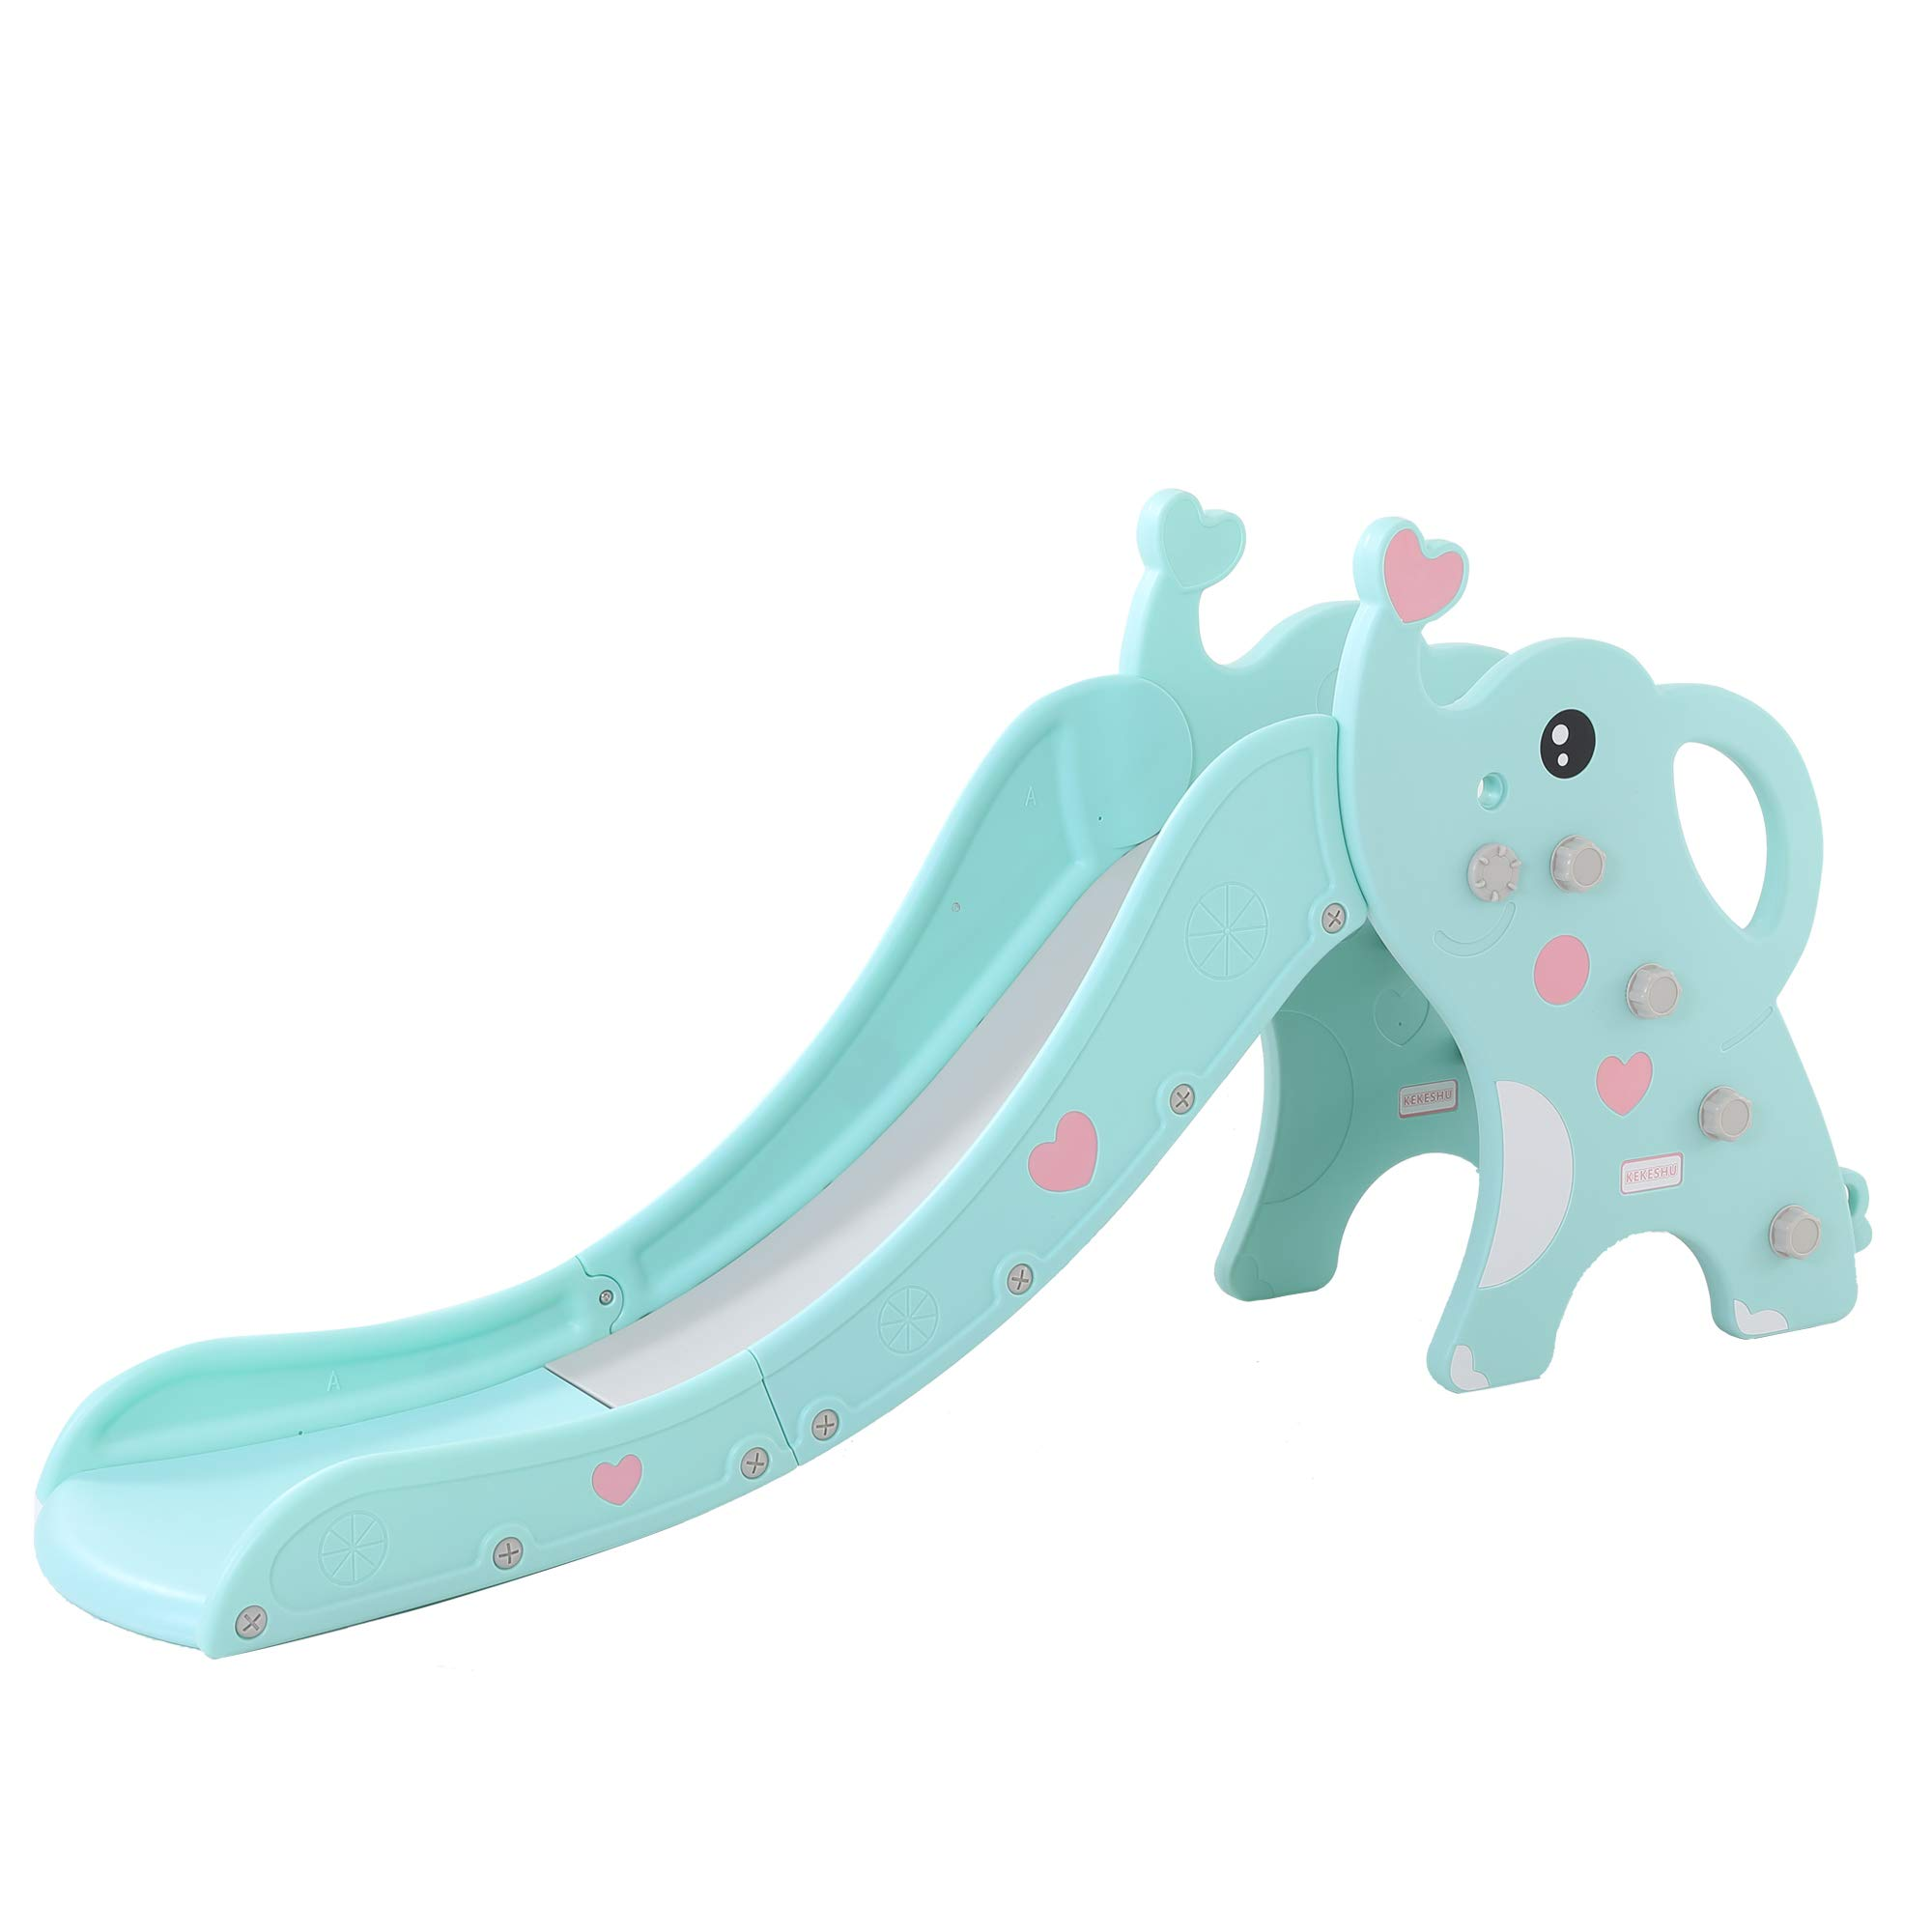 WenStorm Slide for Boys Girls Indoor Outdoor Backyard Use First Slide Playground Plastic Play Slide Climber with Basketball Hoop Elephant Sky Blue